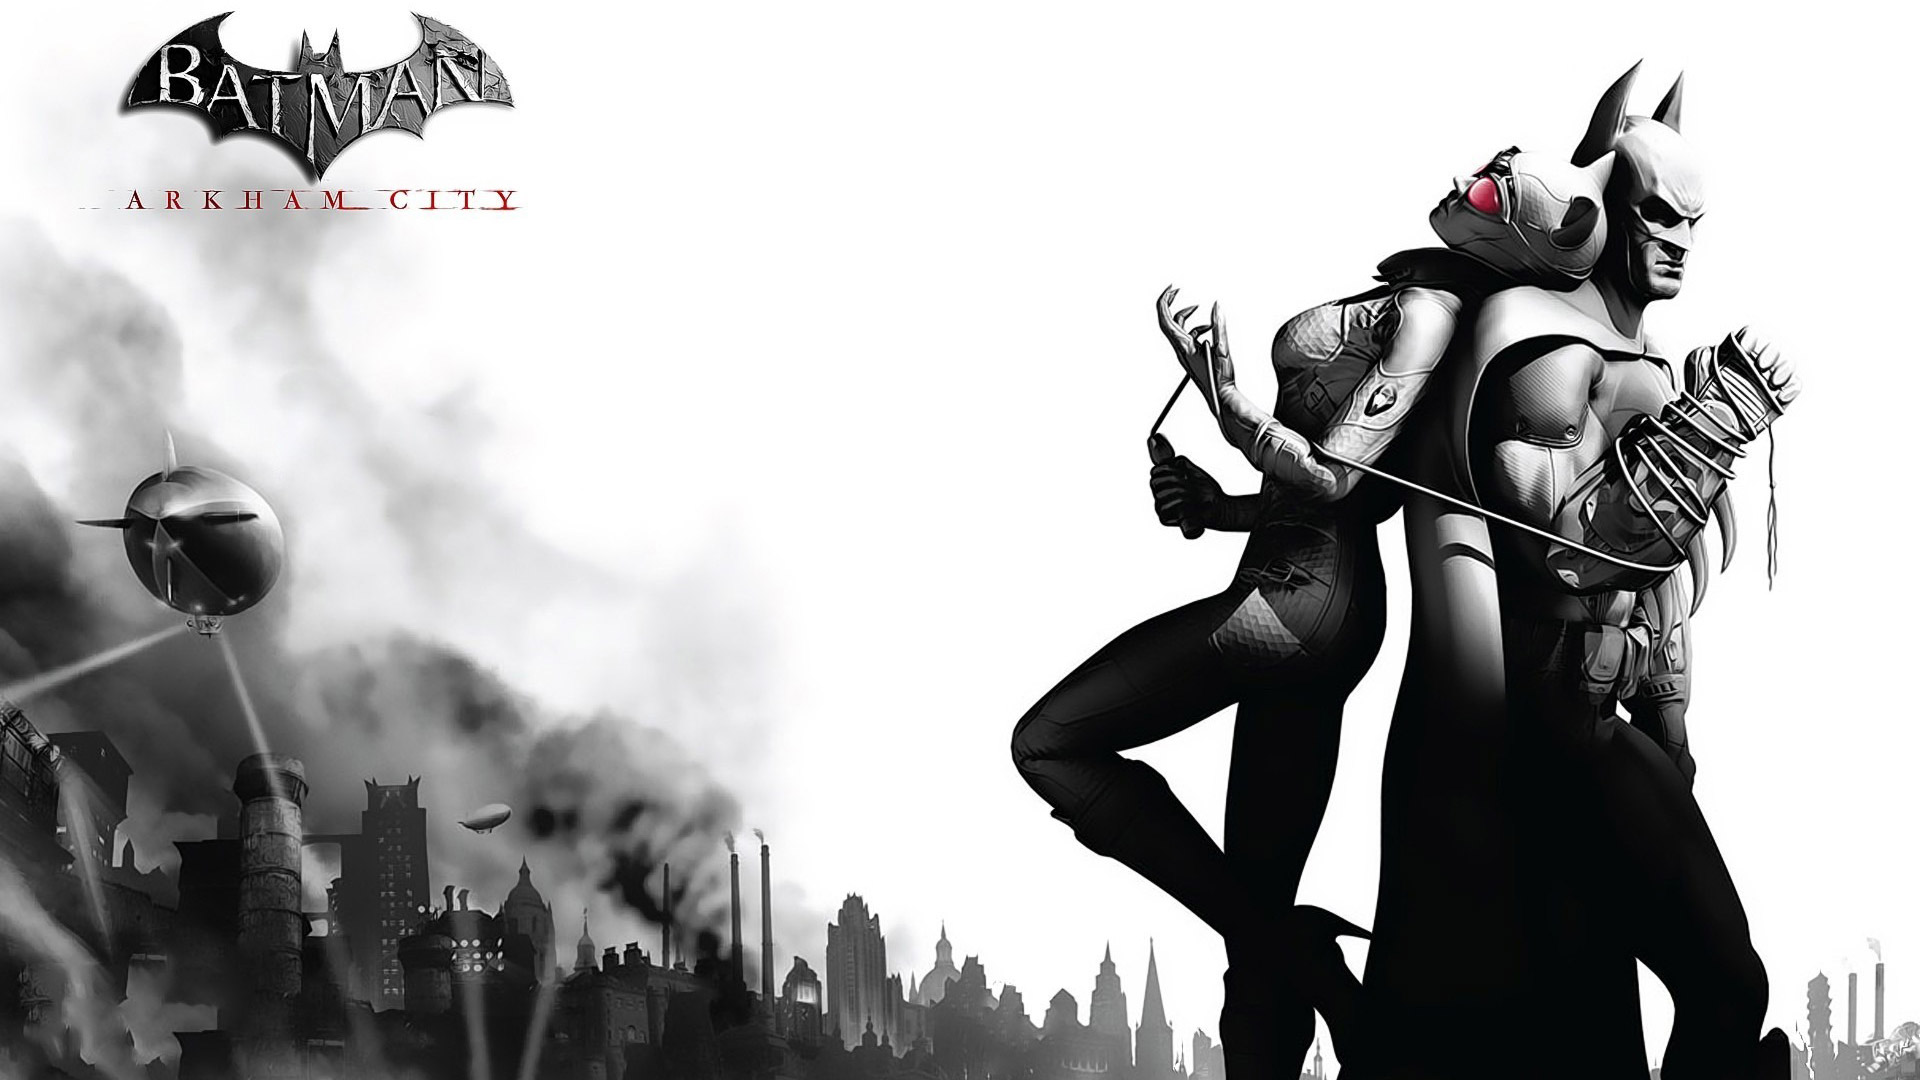 Free Batman: Arkham City Wallpaper in 1920x1080